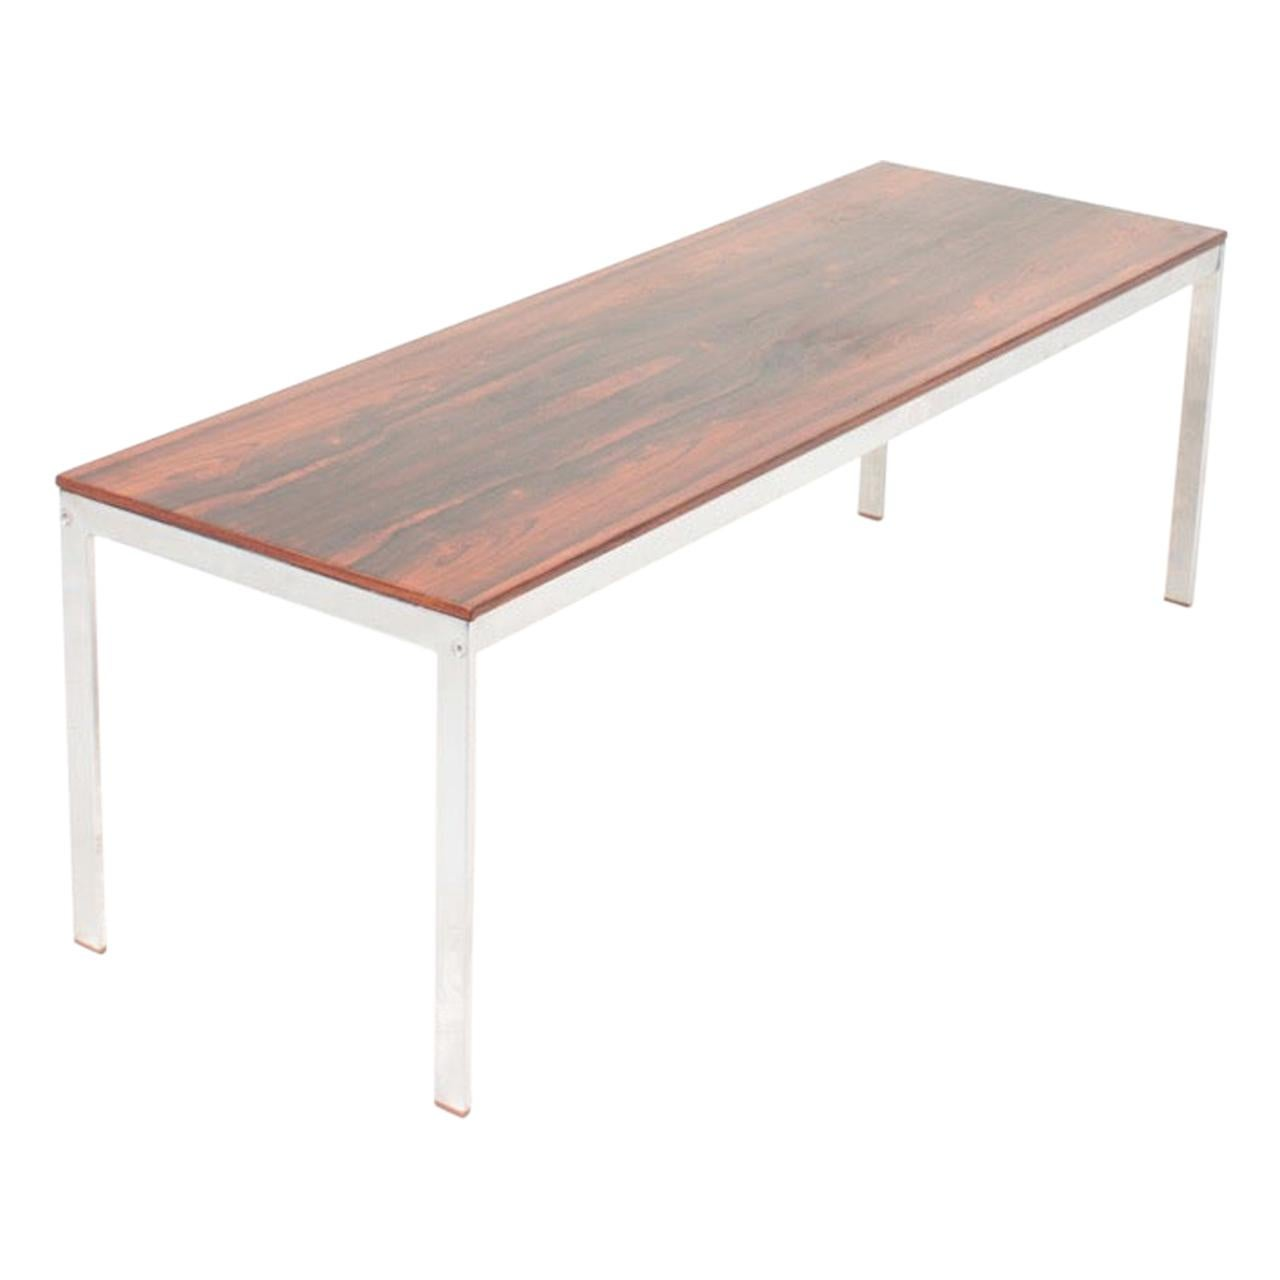 Midcentury Low Table in Rosewood, Danish Design, 1960s